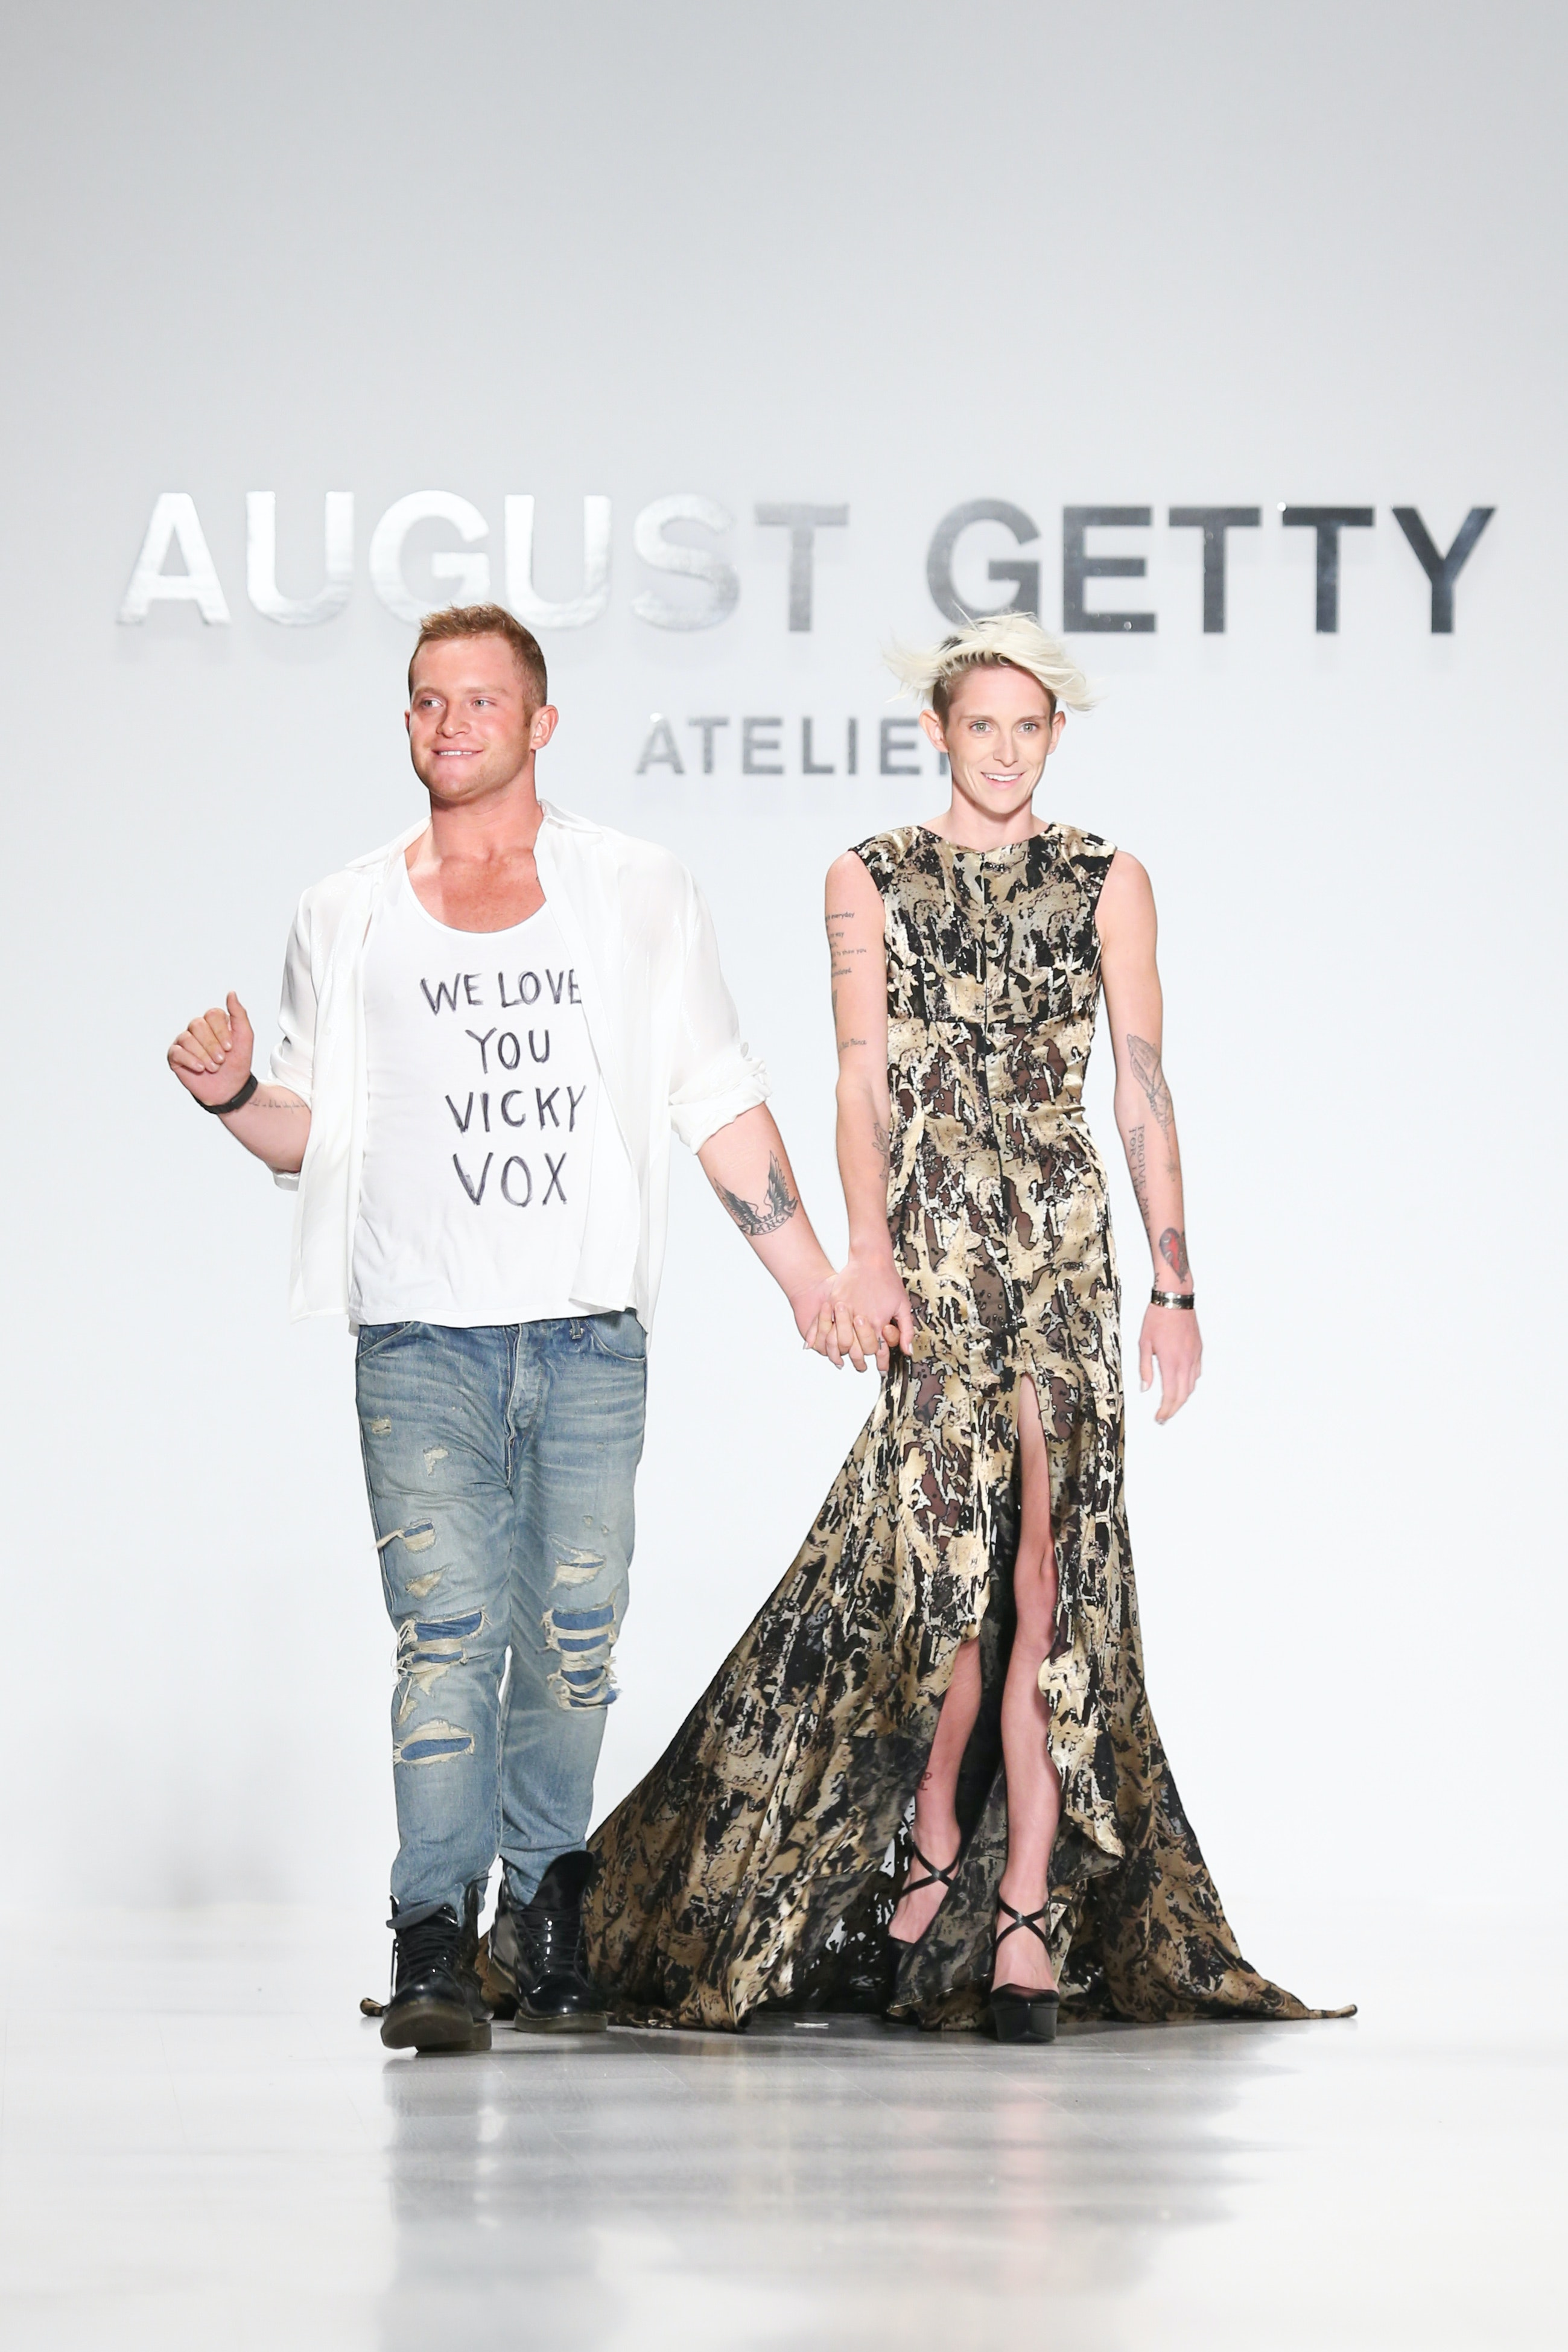 August Getty